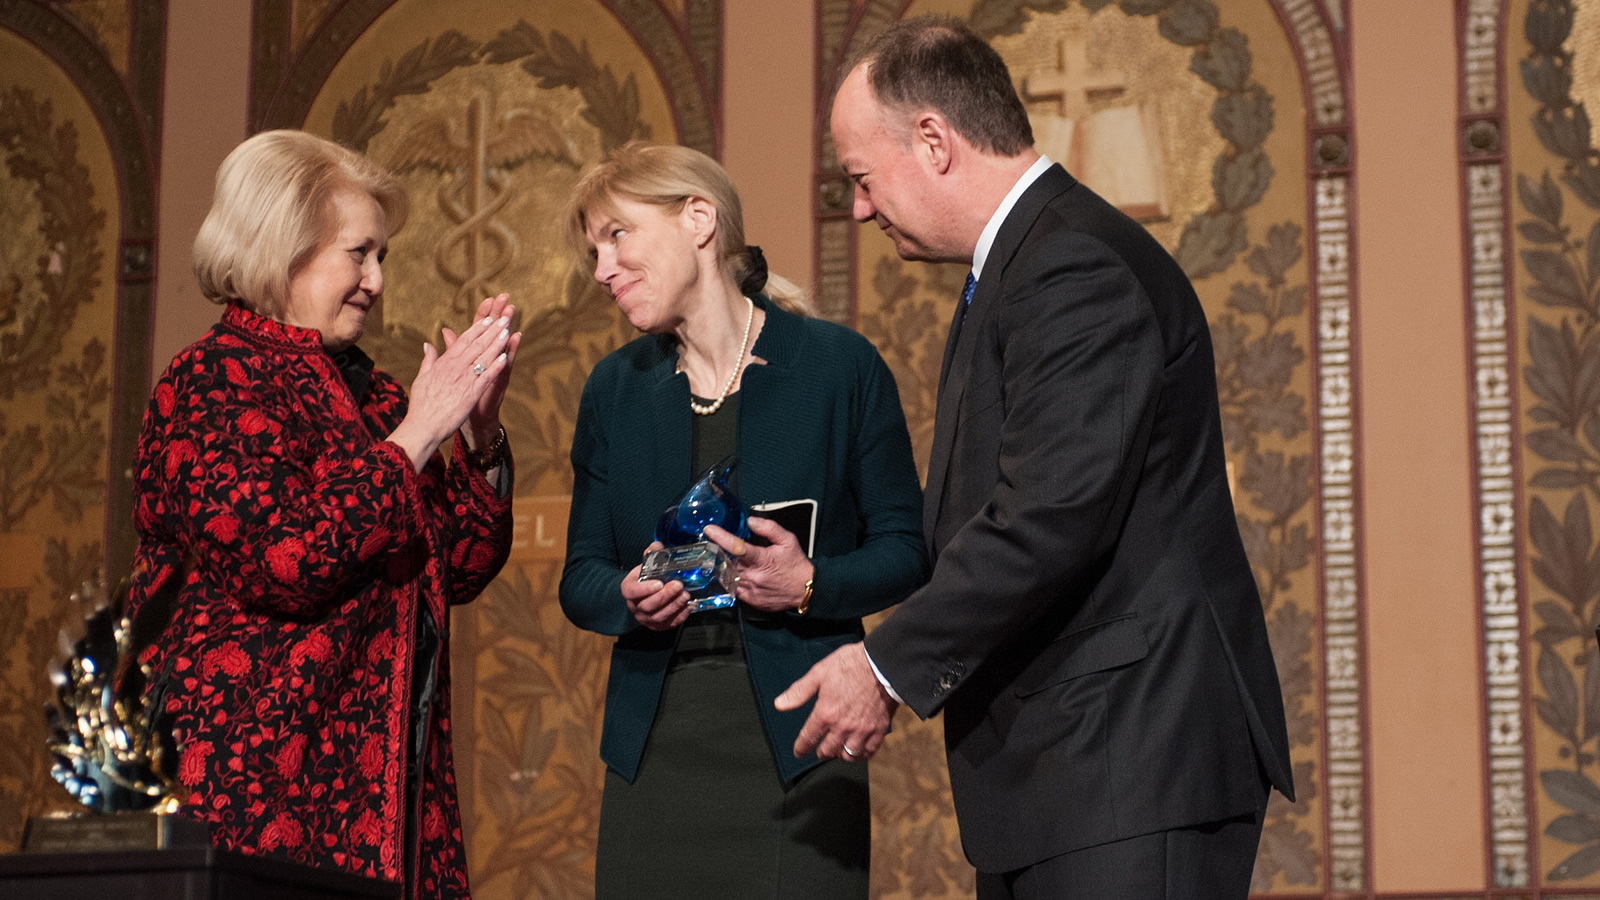 John J. DeGioia and Melanne Verveer present Alissa Rubin with the 2016 Global Trailblazer Award.